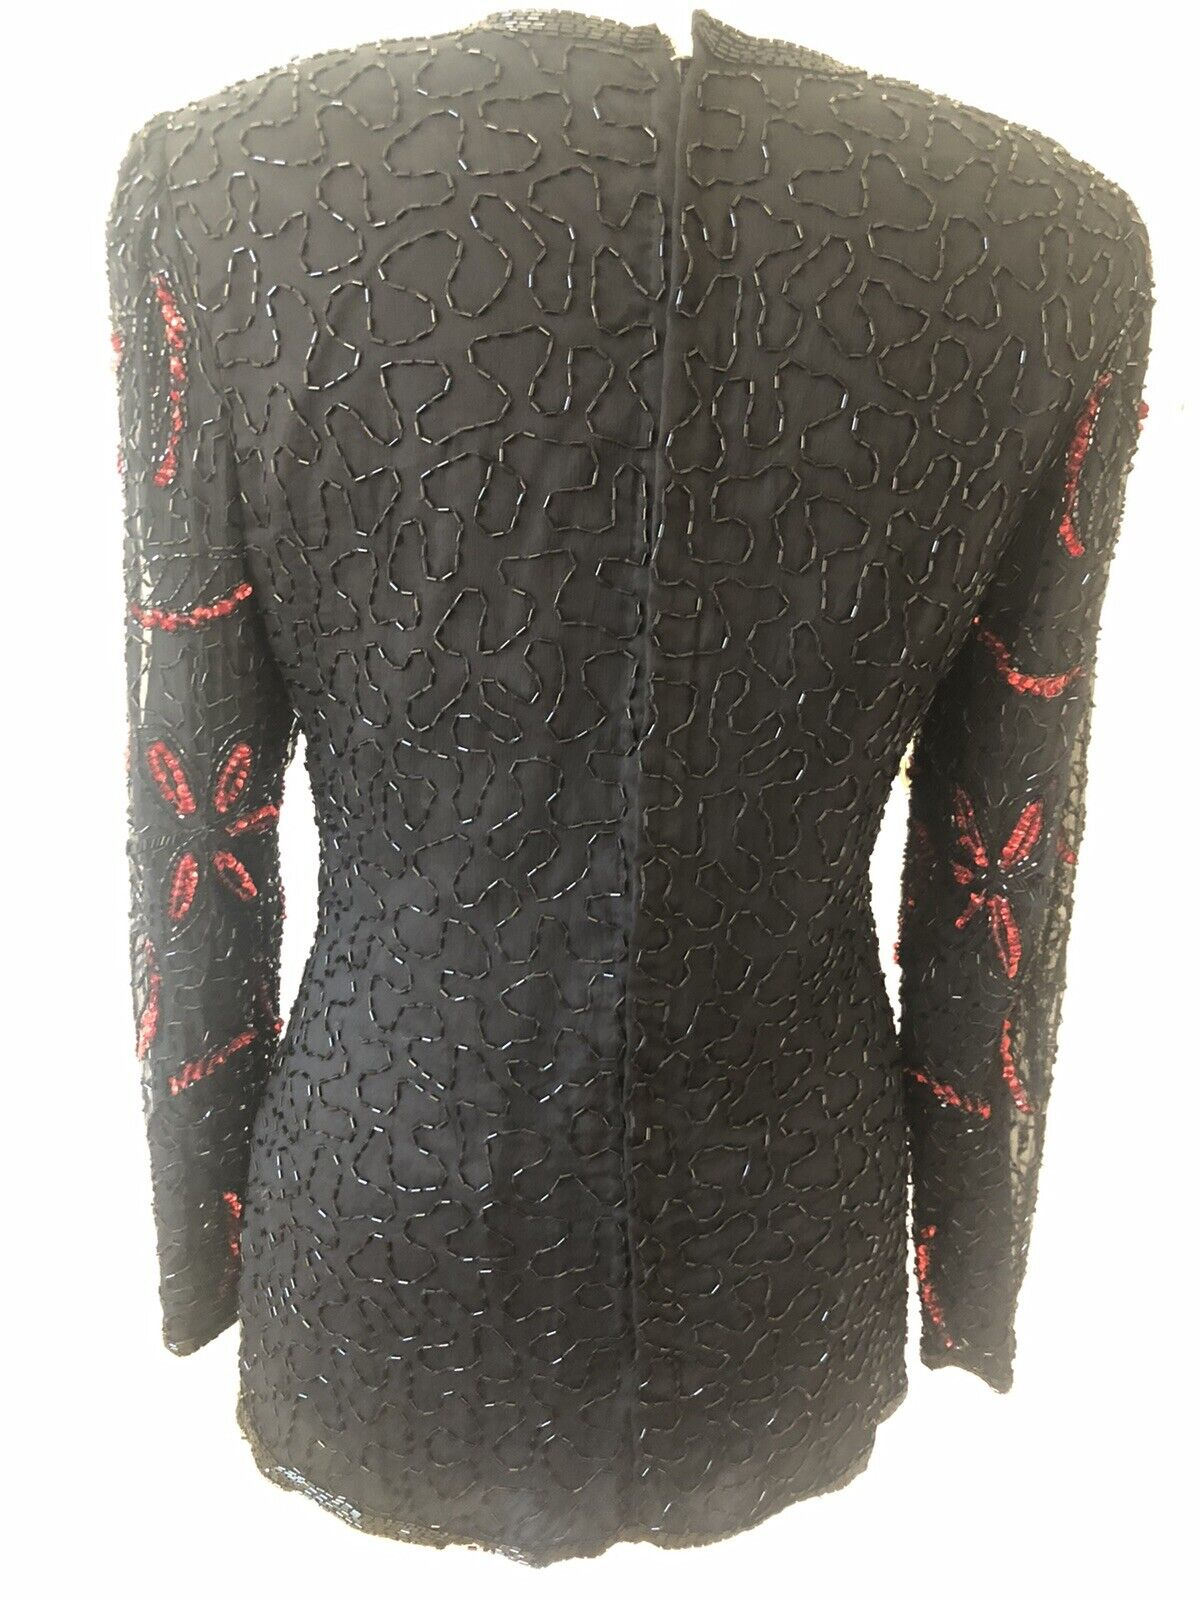 'After six' Size 12 Black & Red beaded Long Sleeved Vintage Top